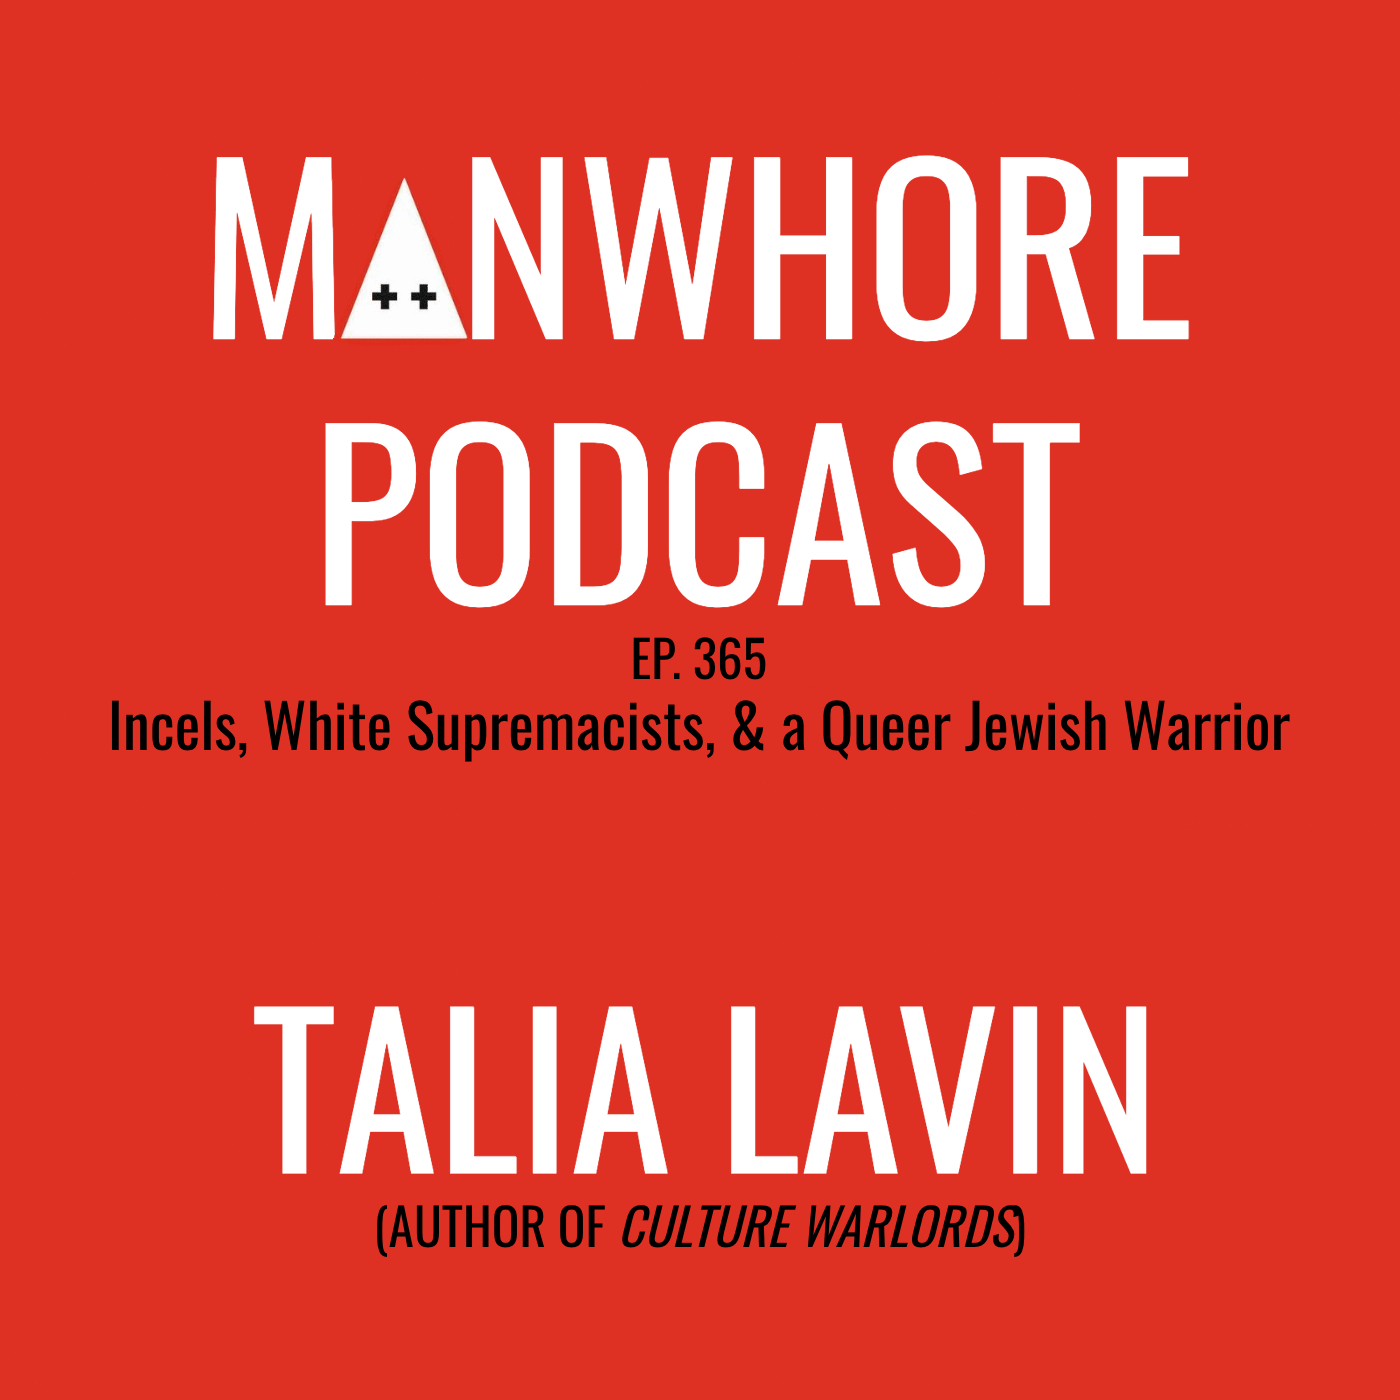 The Manwhore Podcast: A Sex-Positive Quest - Ep. 365: Incels, White Supremacists, & a Queer Jewish Warrior